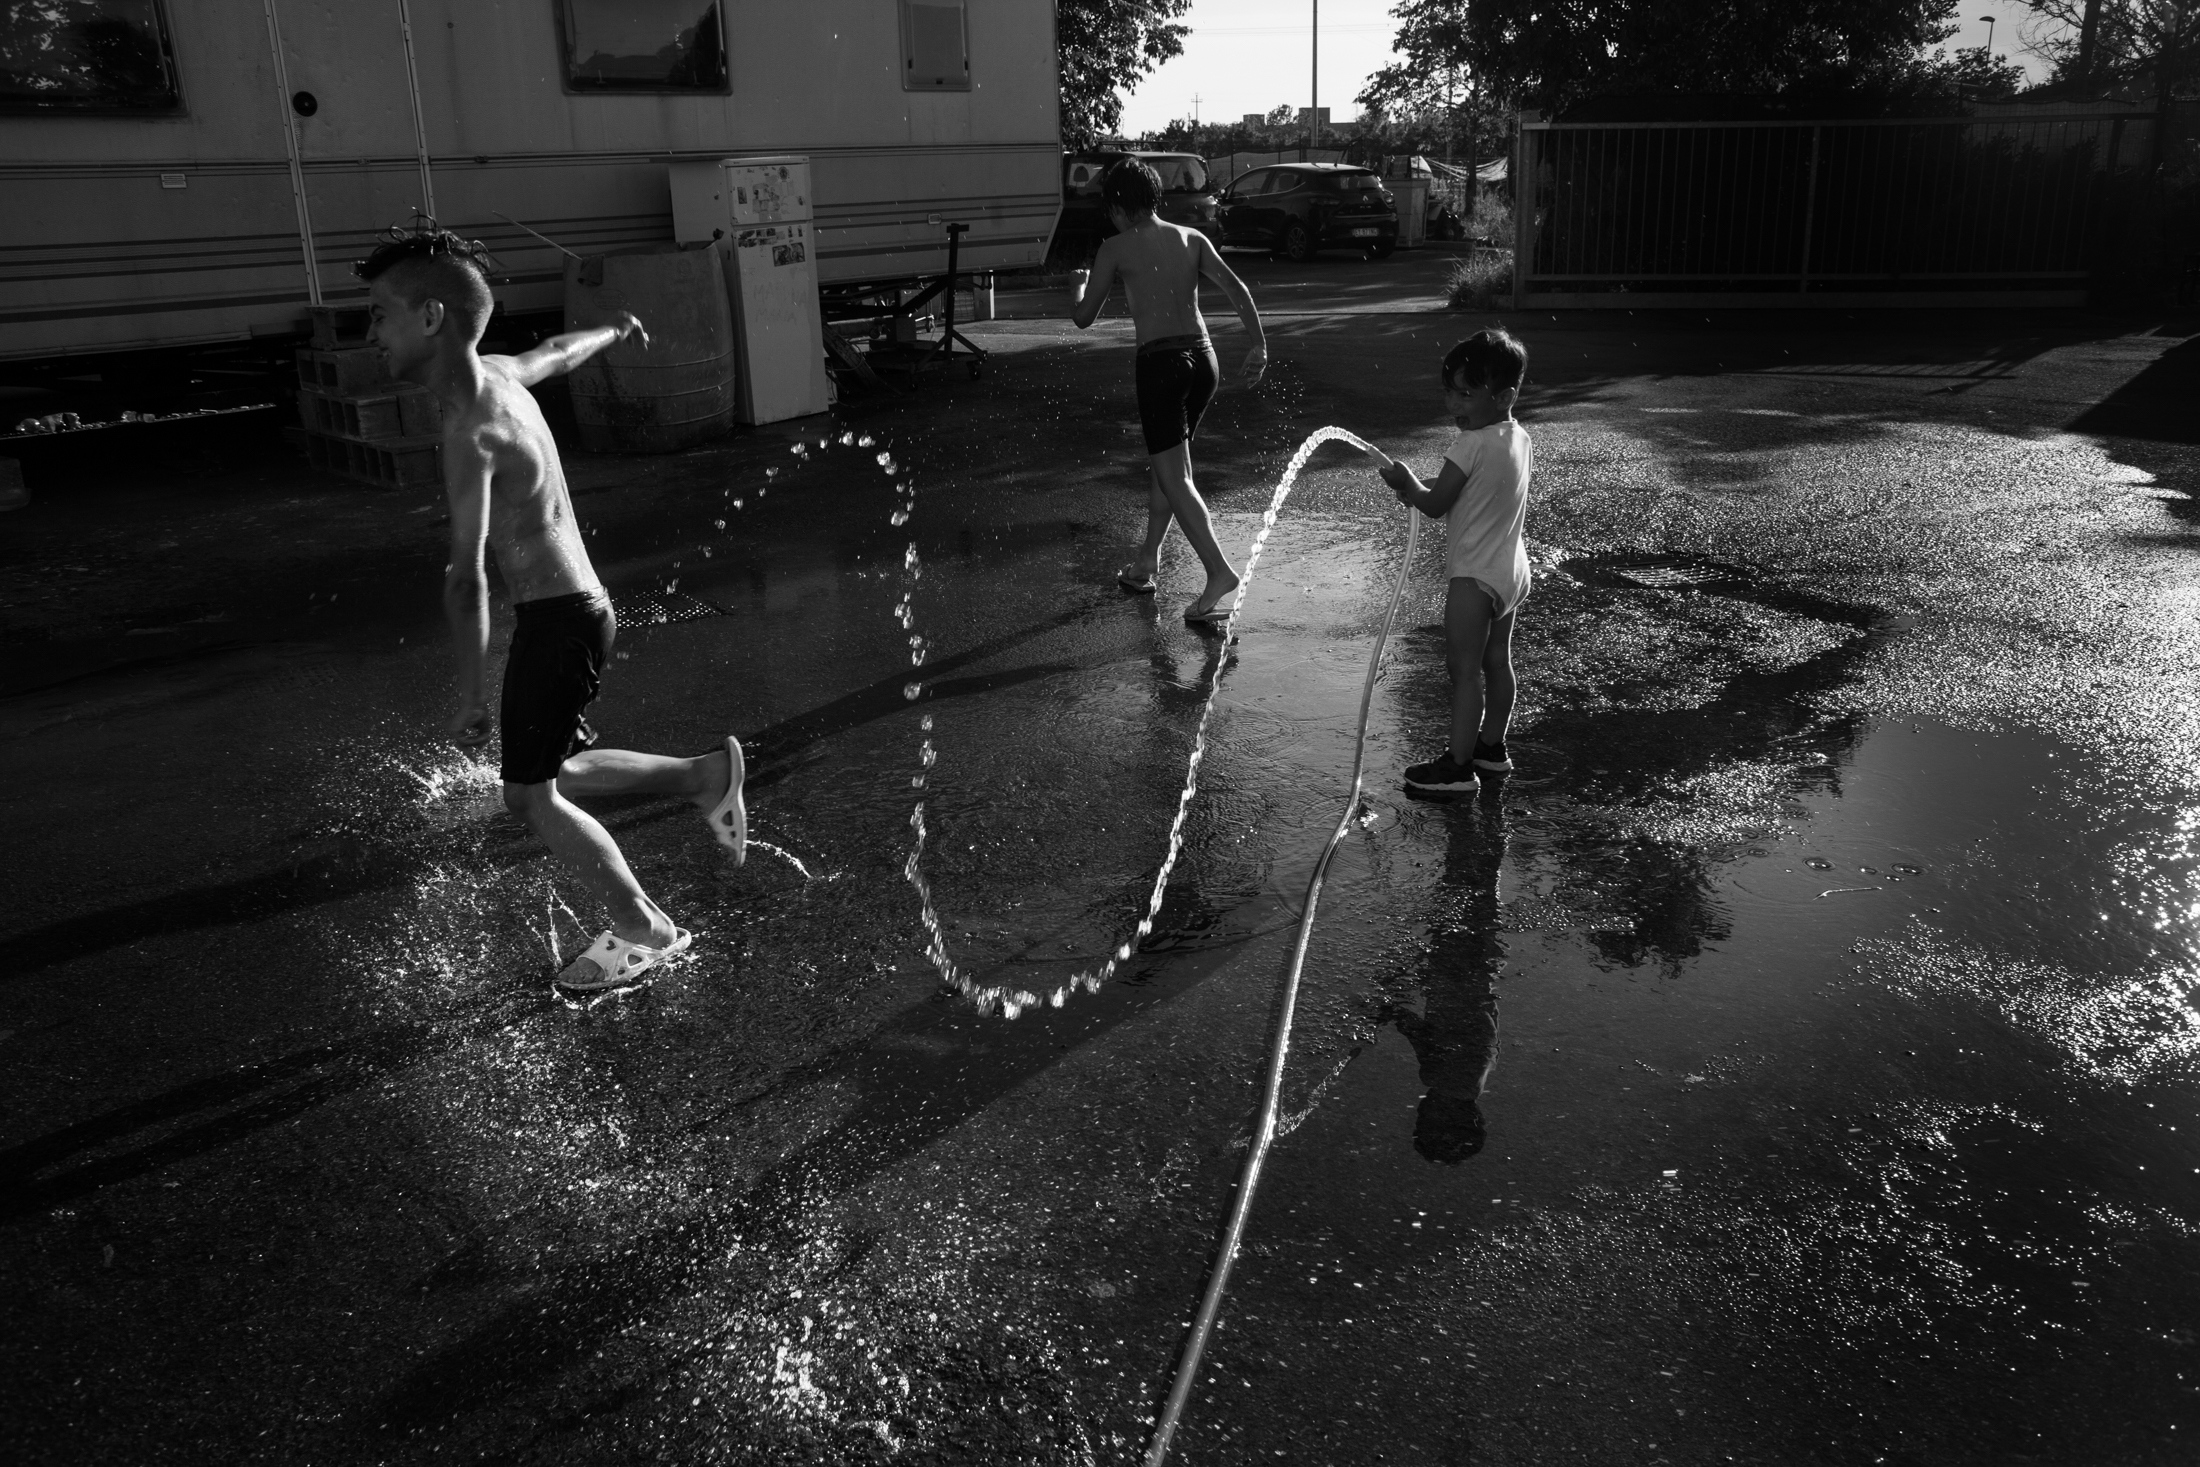 May 2017, nomad camp of Castelnuovo Rangone, Emilia Romagna, Italy. A group of children plays with the water cane, to counter the torrid heat that has characterized the Po Valley since the spring. Within their area of the field there is only one tree, and in the absence of shade the temperature and the heat are perceived much more intensely, also due to the asphalt on which the field itself rises.